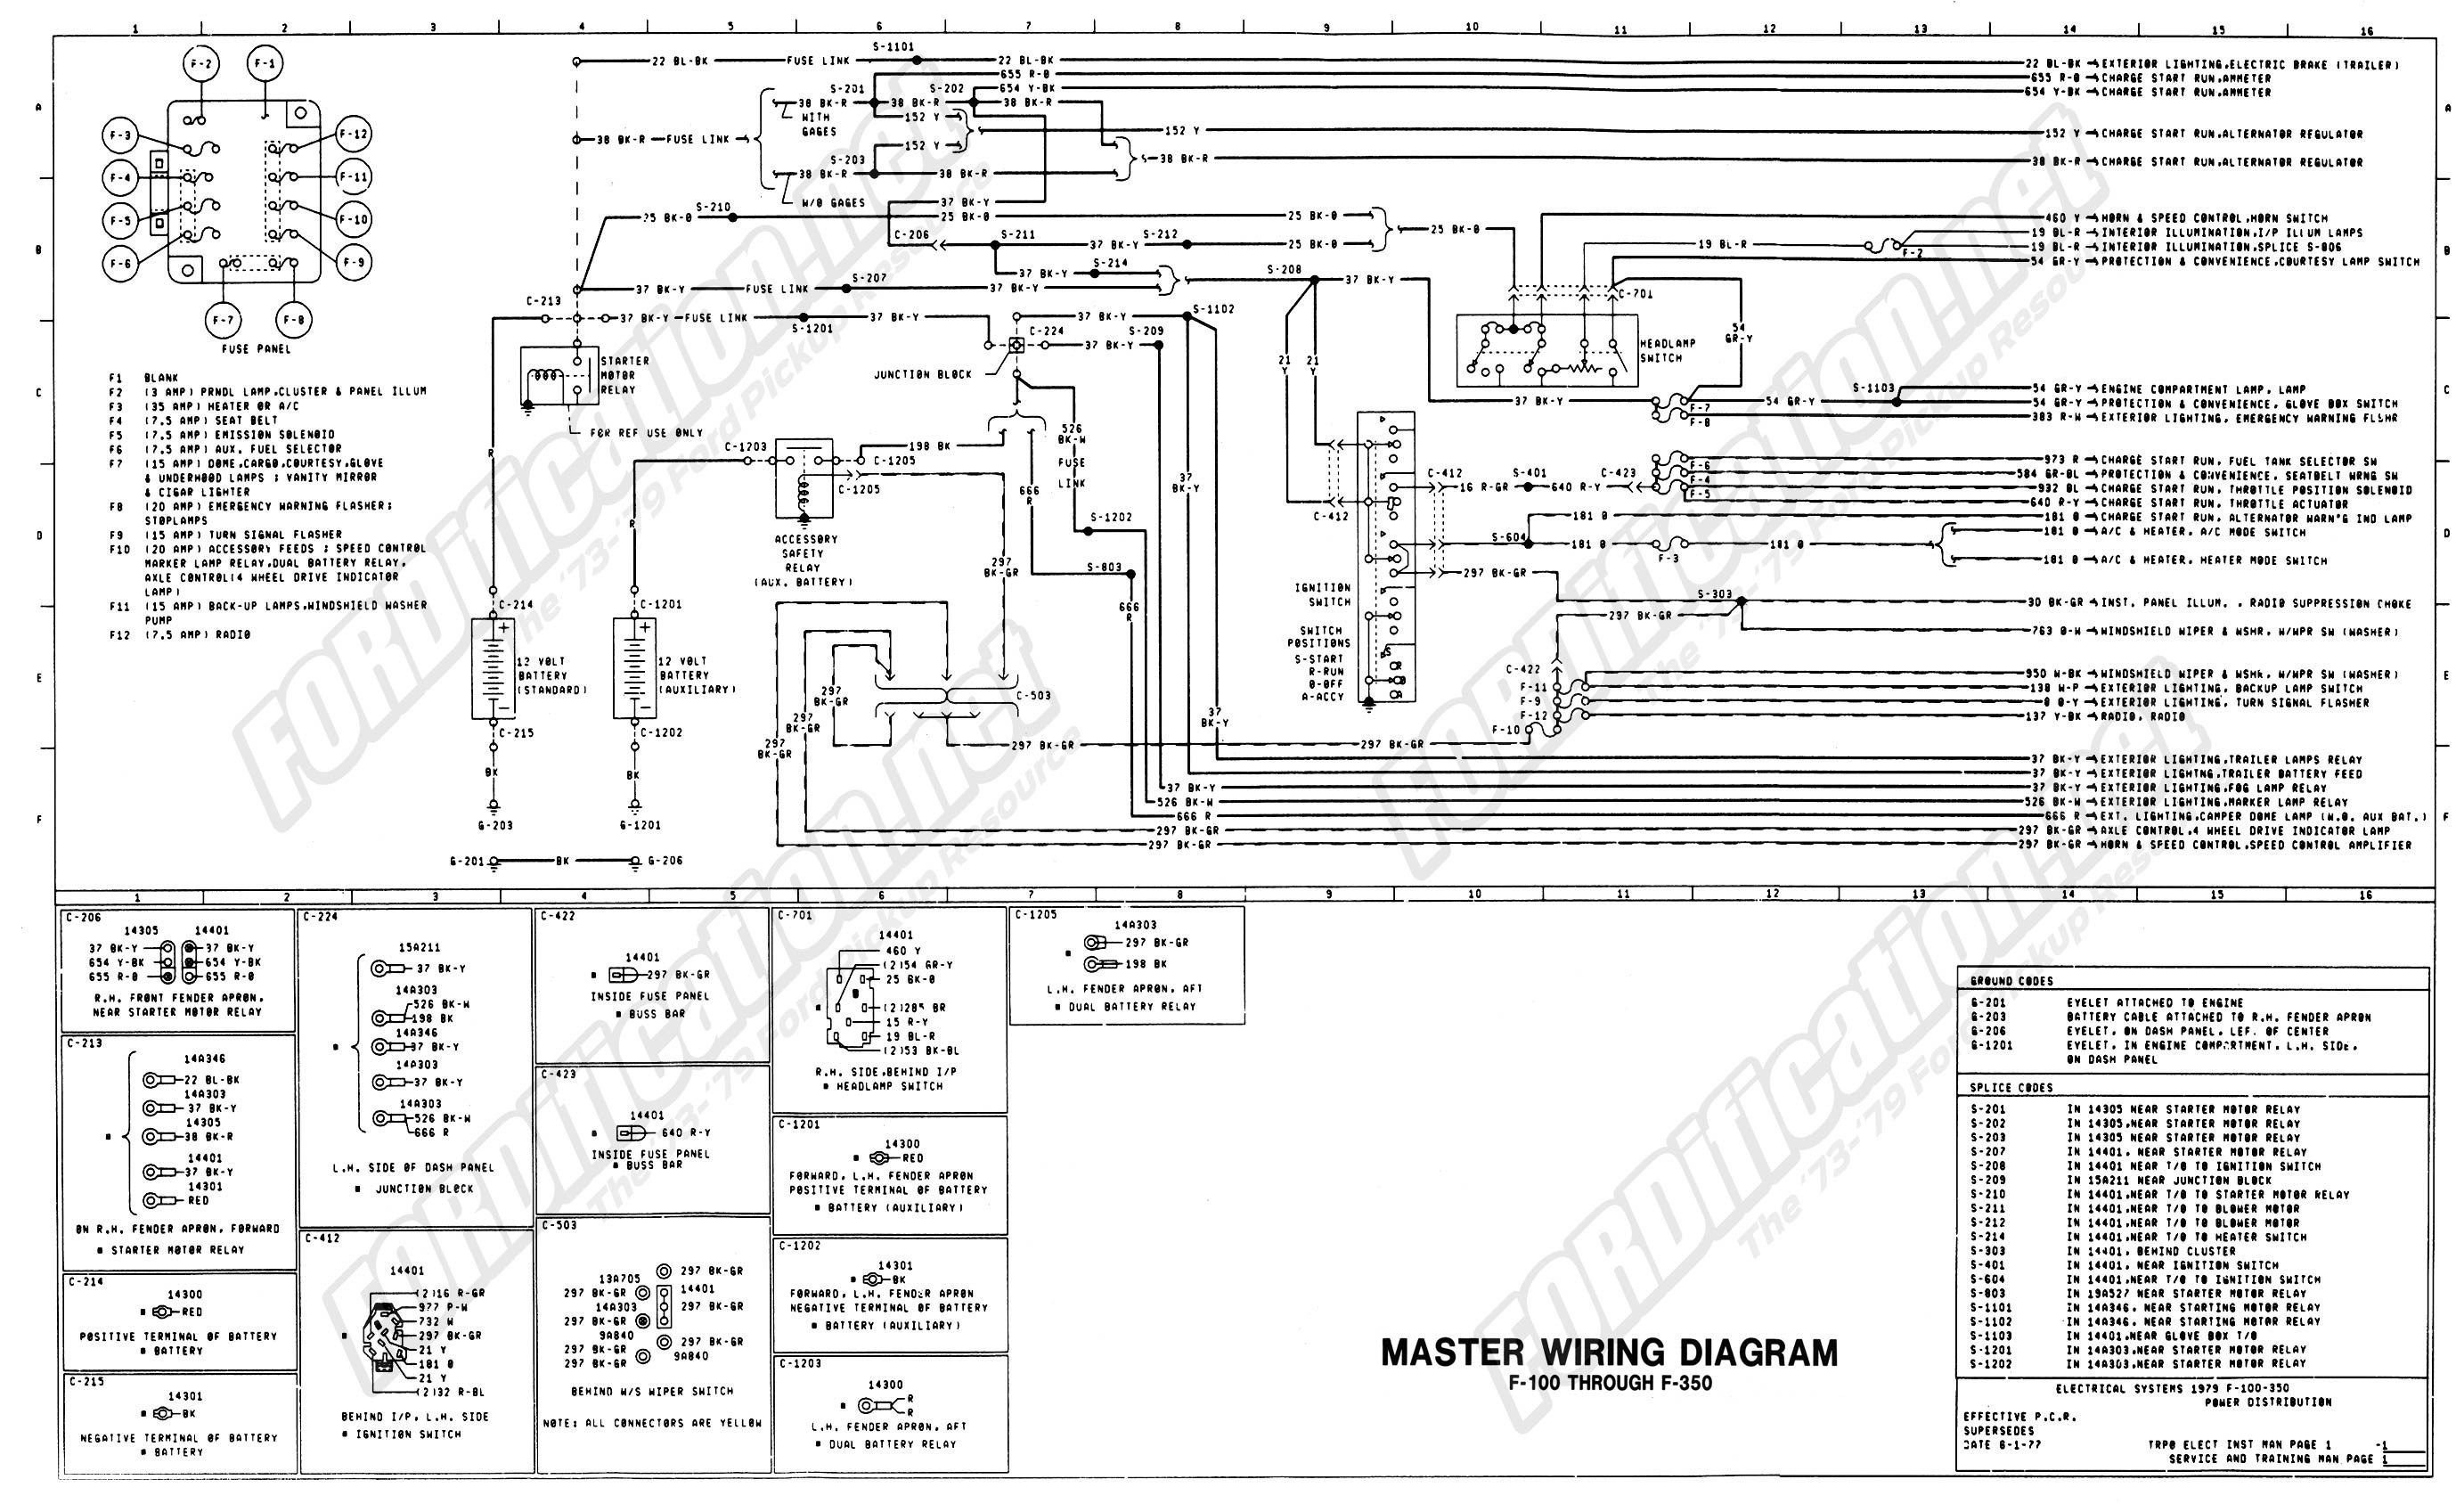 sterling lt7501 wiring diagram schematics wiring diagrams u2022 rh orwellvets co